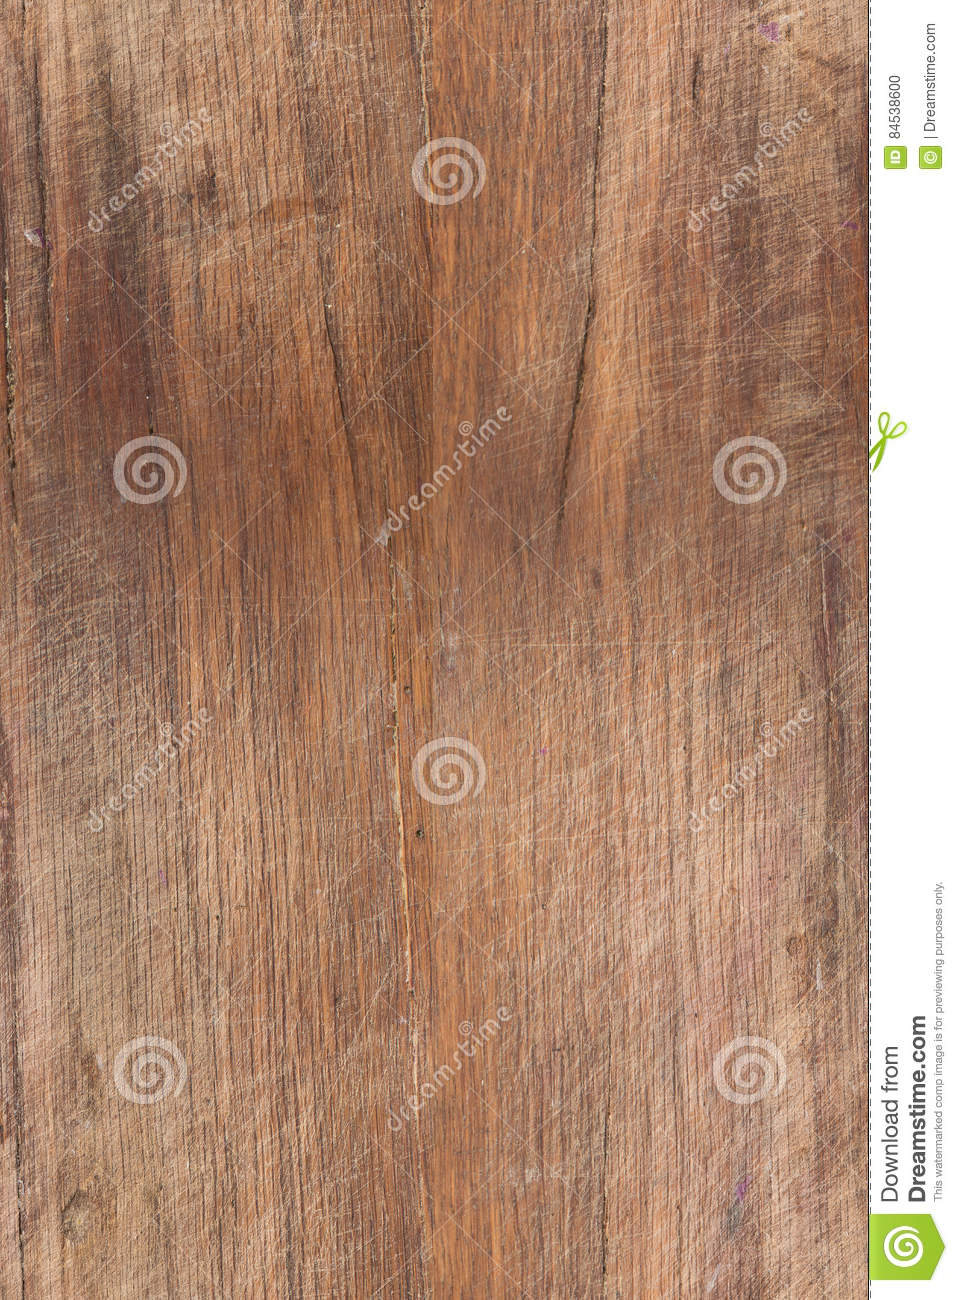 Holzdielen Textur Seamless Wood Texture Stock Photo Image Of Holzdielen 84538600